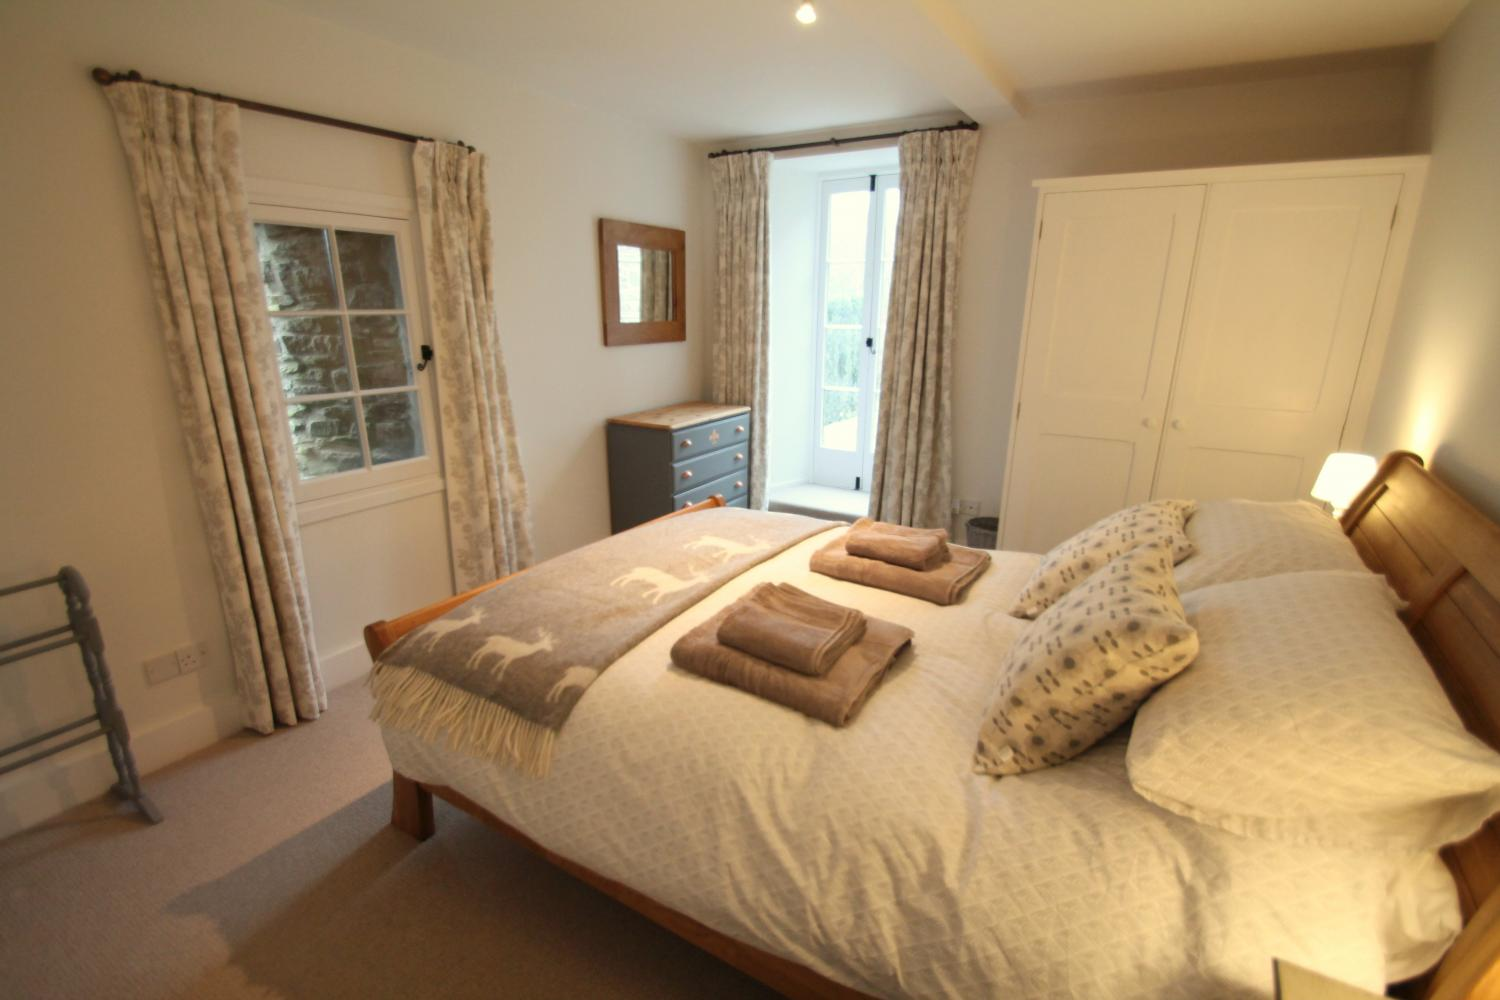 The ground floor master bedroom with king size sleigh bed and French doors onto the terrace.